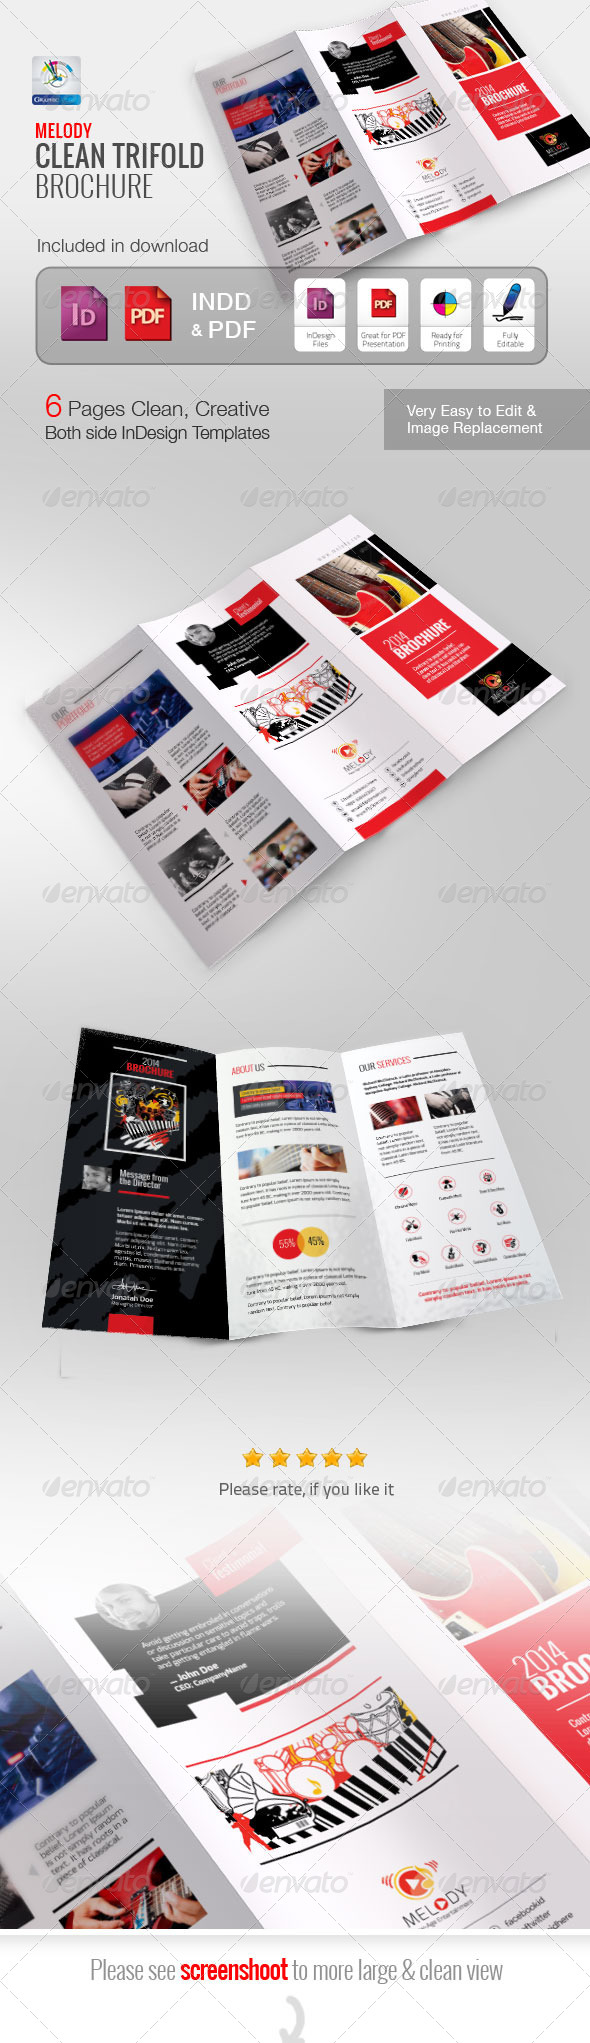 GraphicRiver Melody Clean Trifold Brochure 5838573